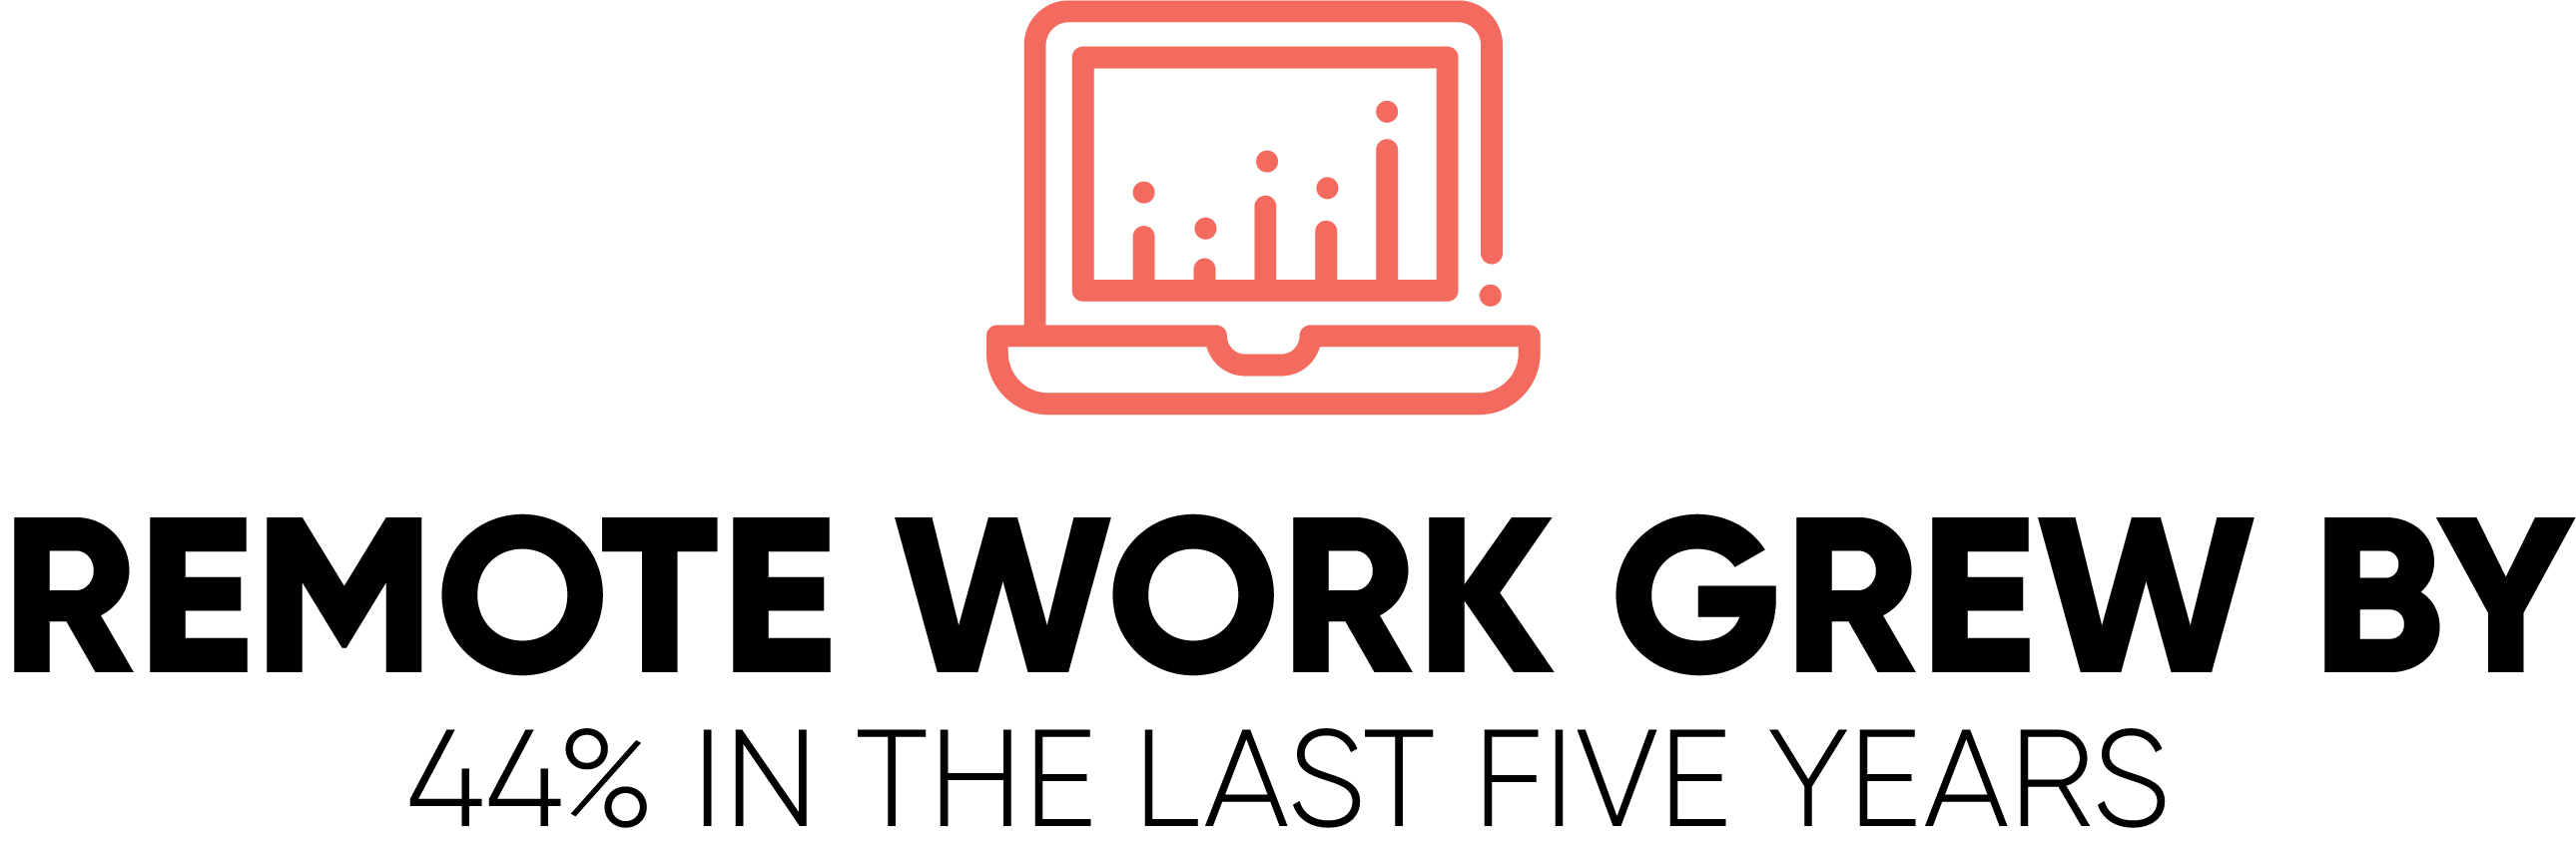 Remote Work Grew By 44% in the Last 5 Years